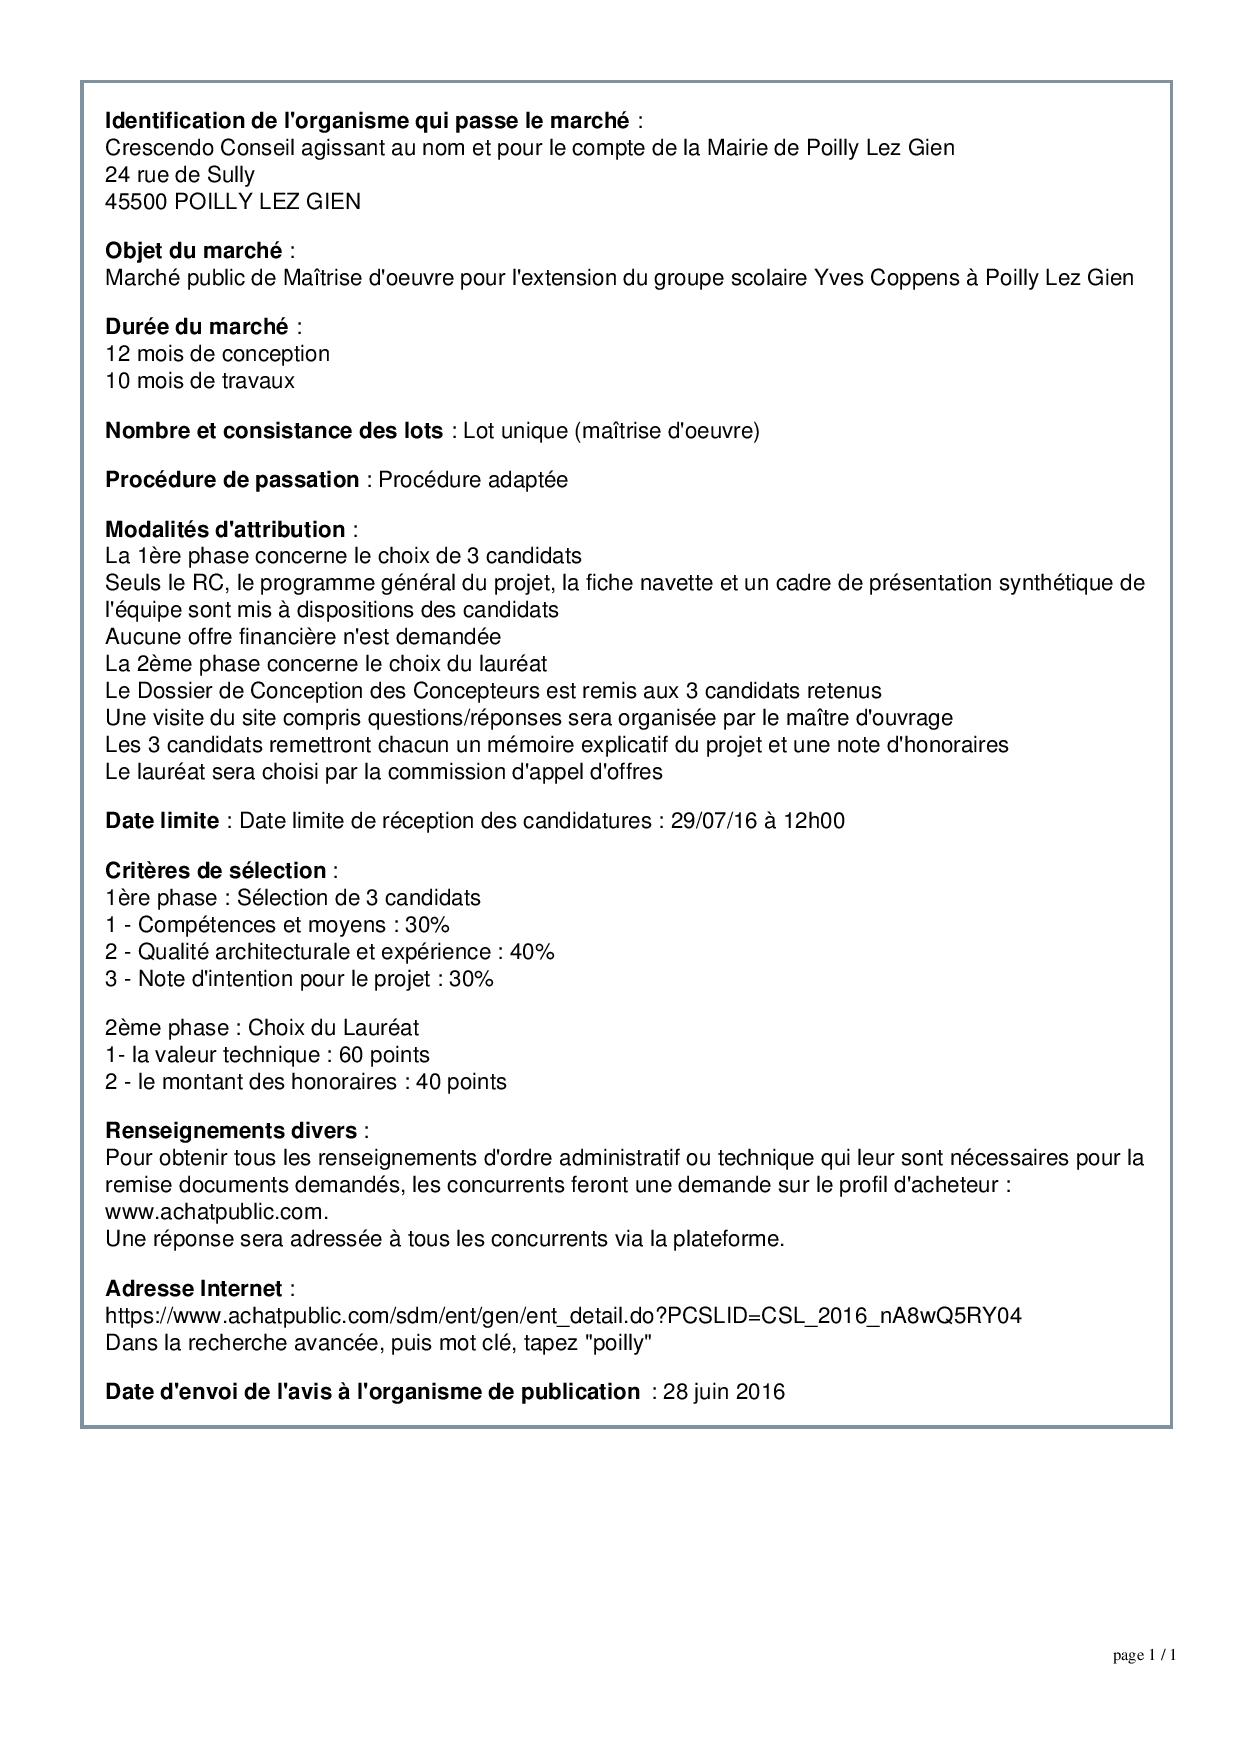 AAPC ecole poilly juin 2016 page 001